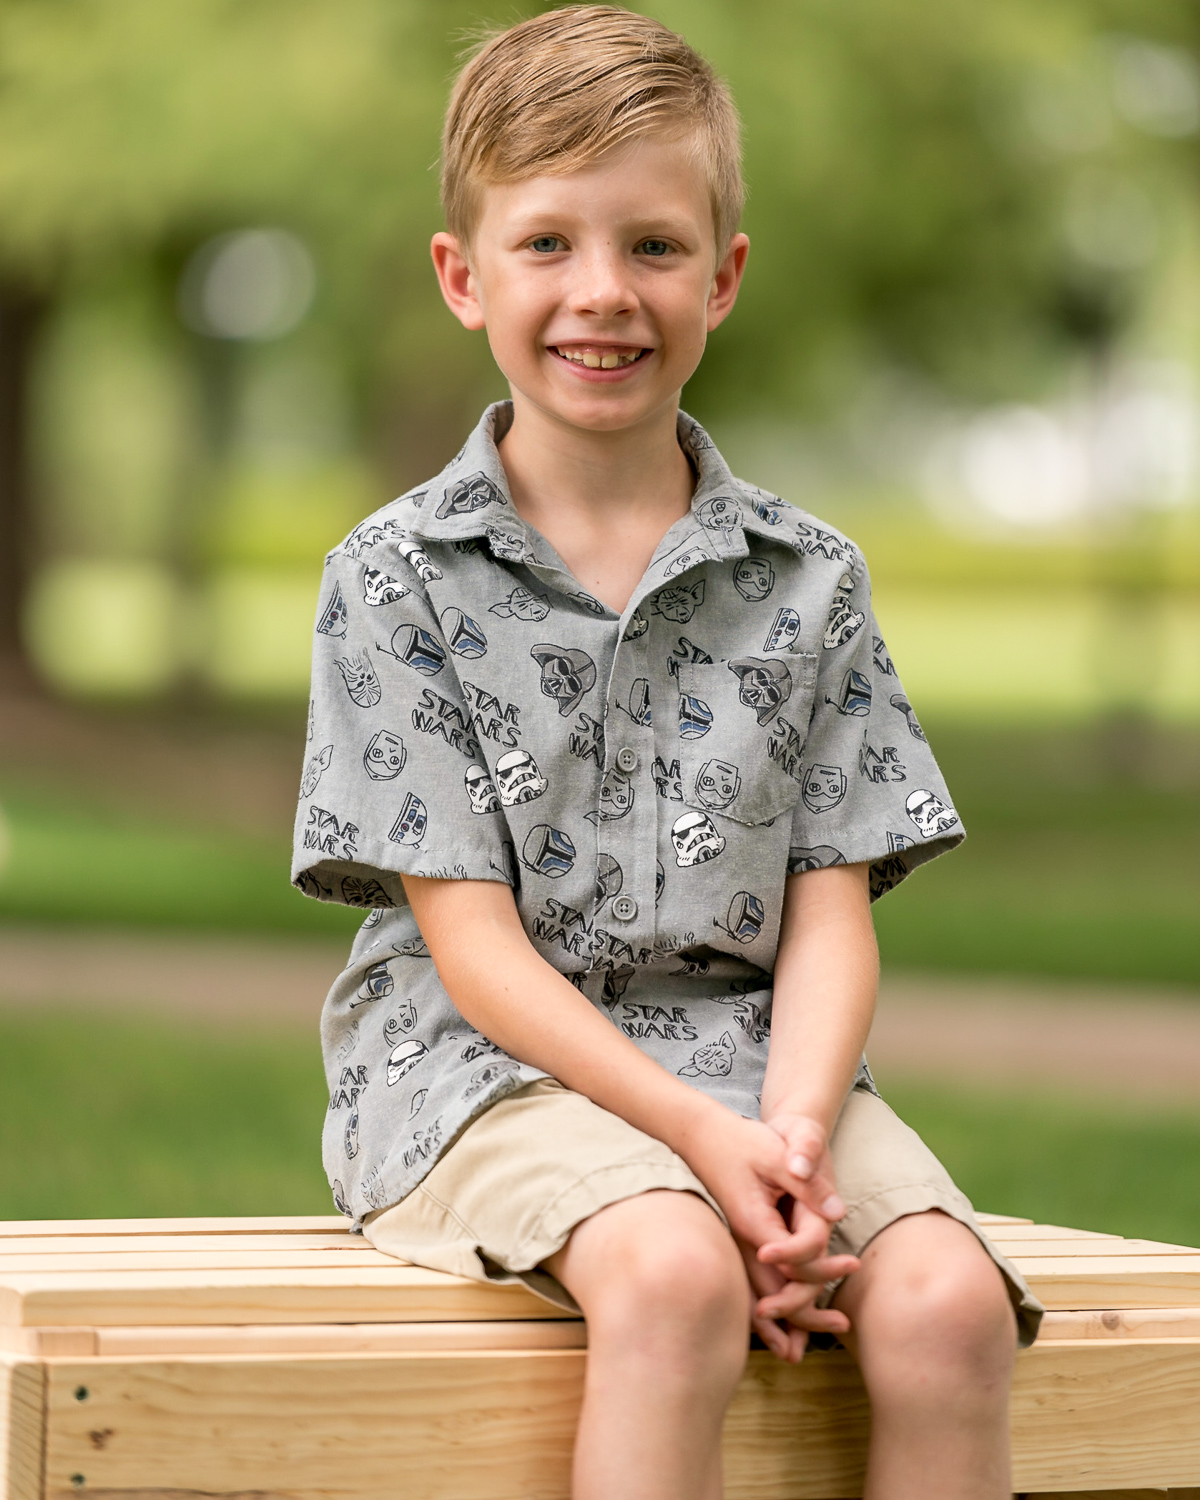 Image: This boy is on a wider version of the bench you'll build in this tutorial.